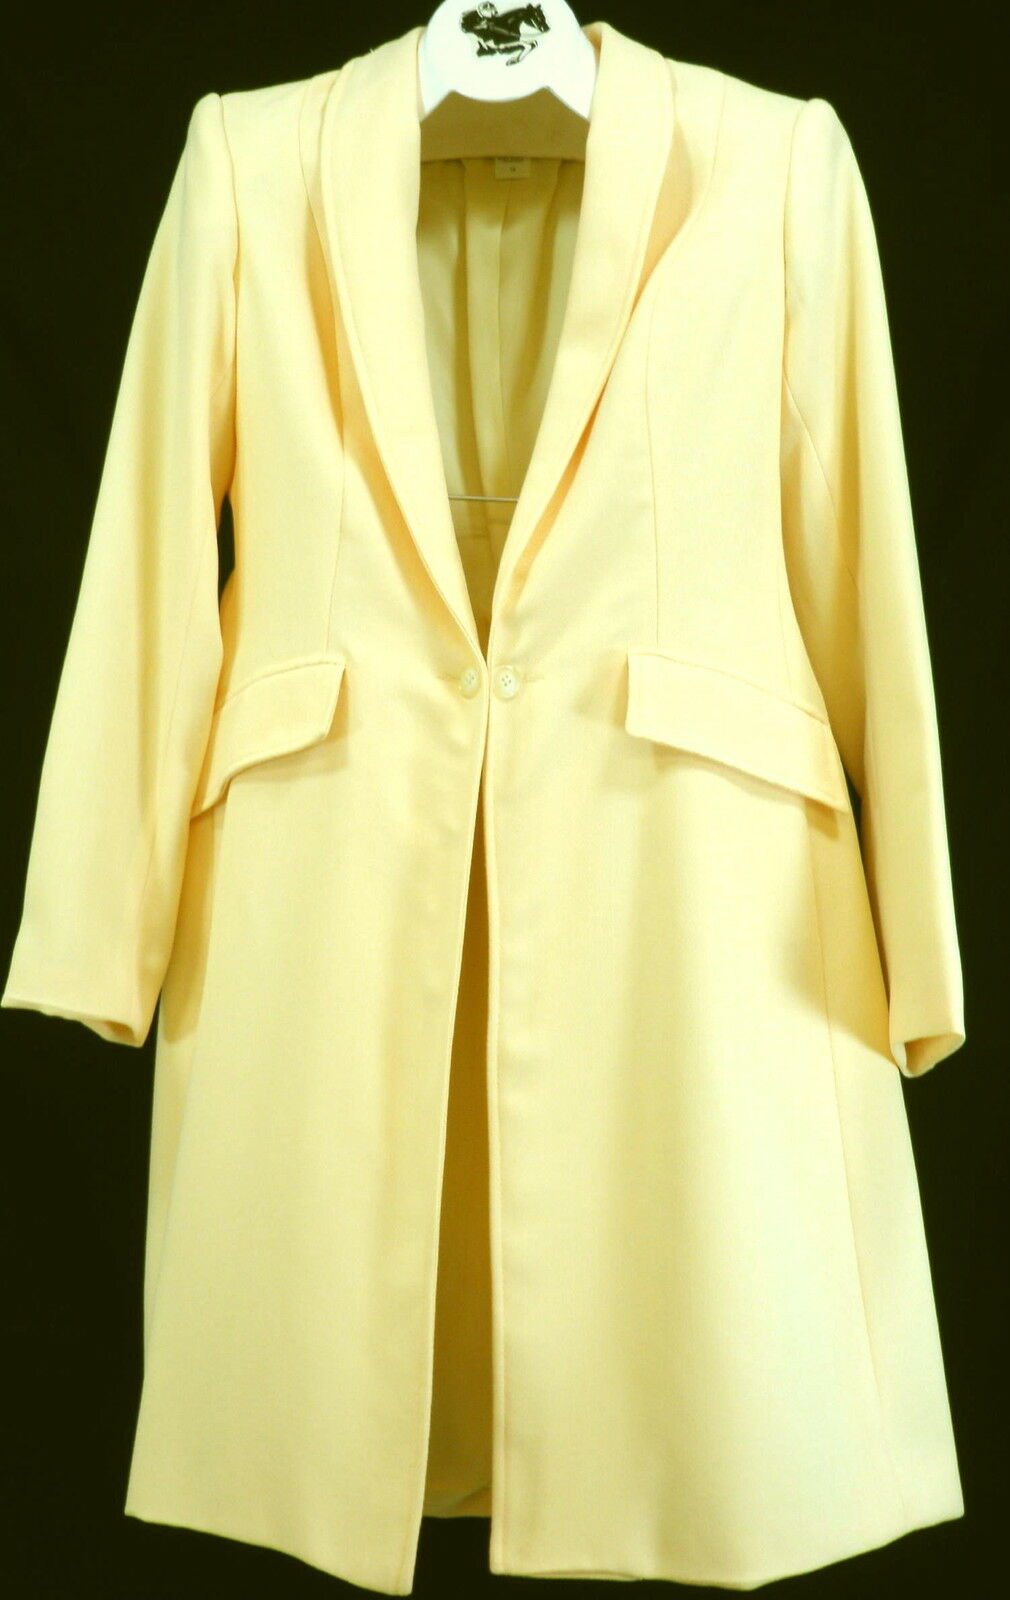 Reed Hill Ladies Saddleseat Day Coat Lt Yellow Herringbone Poly size 16 - USA